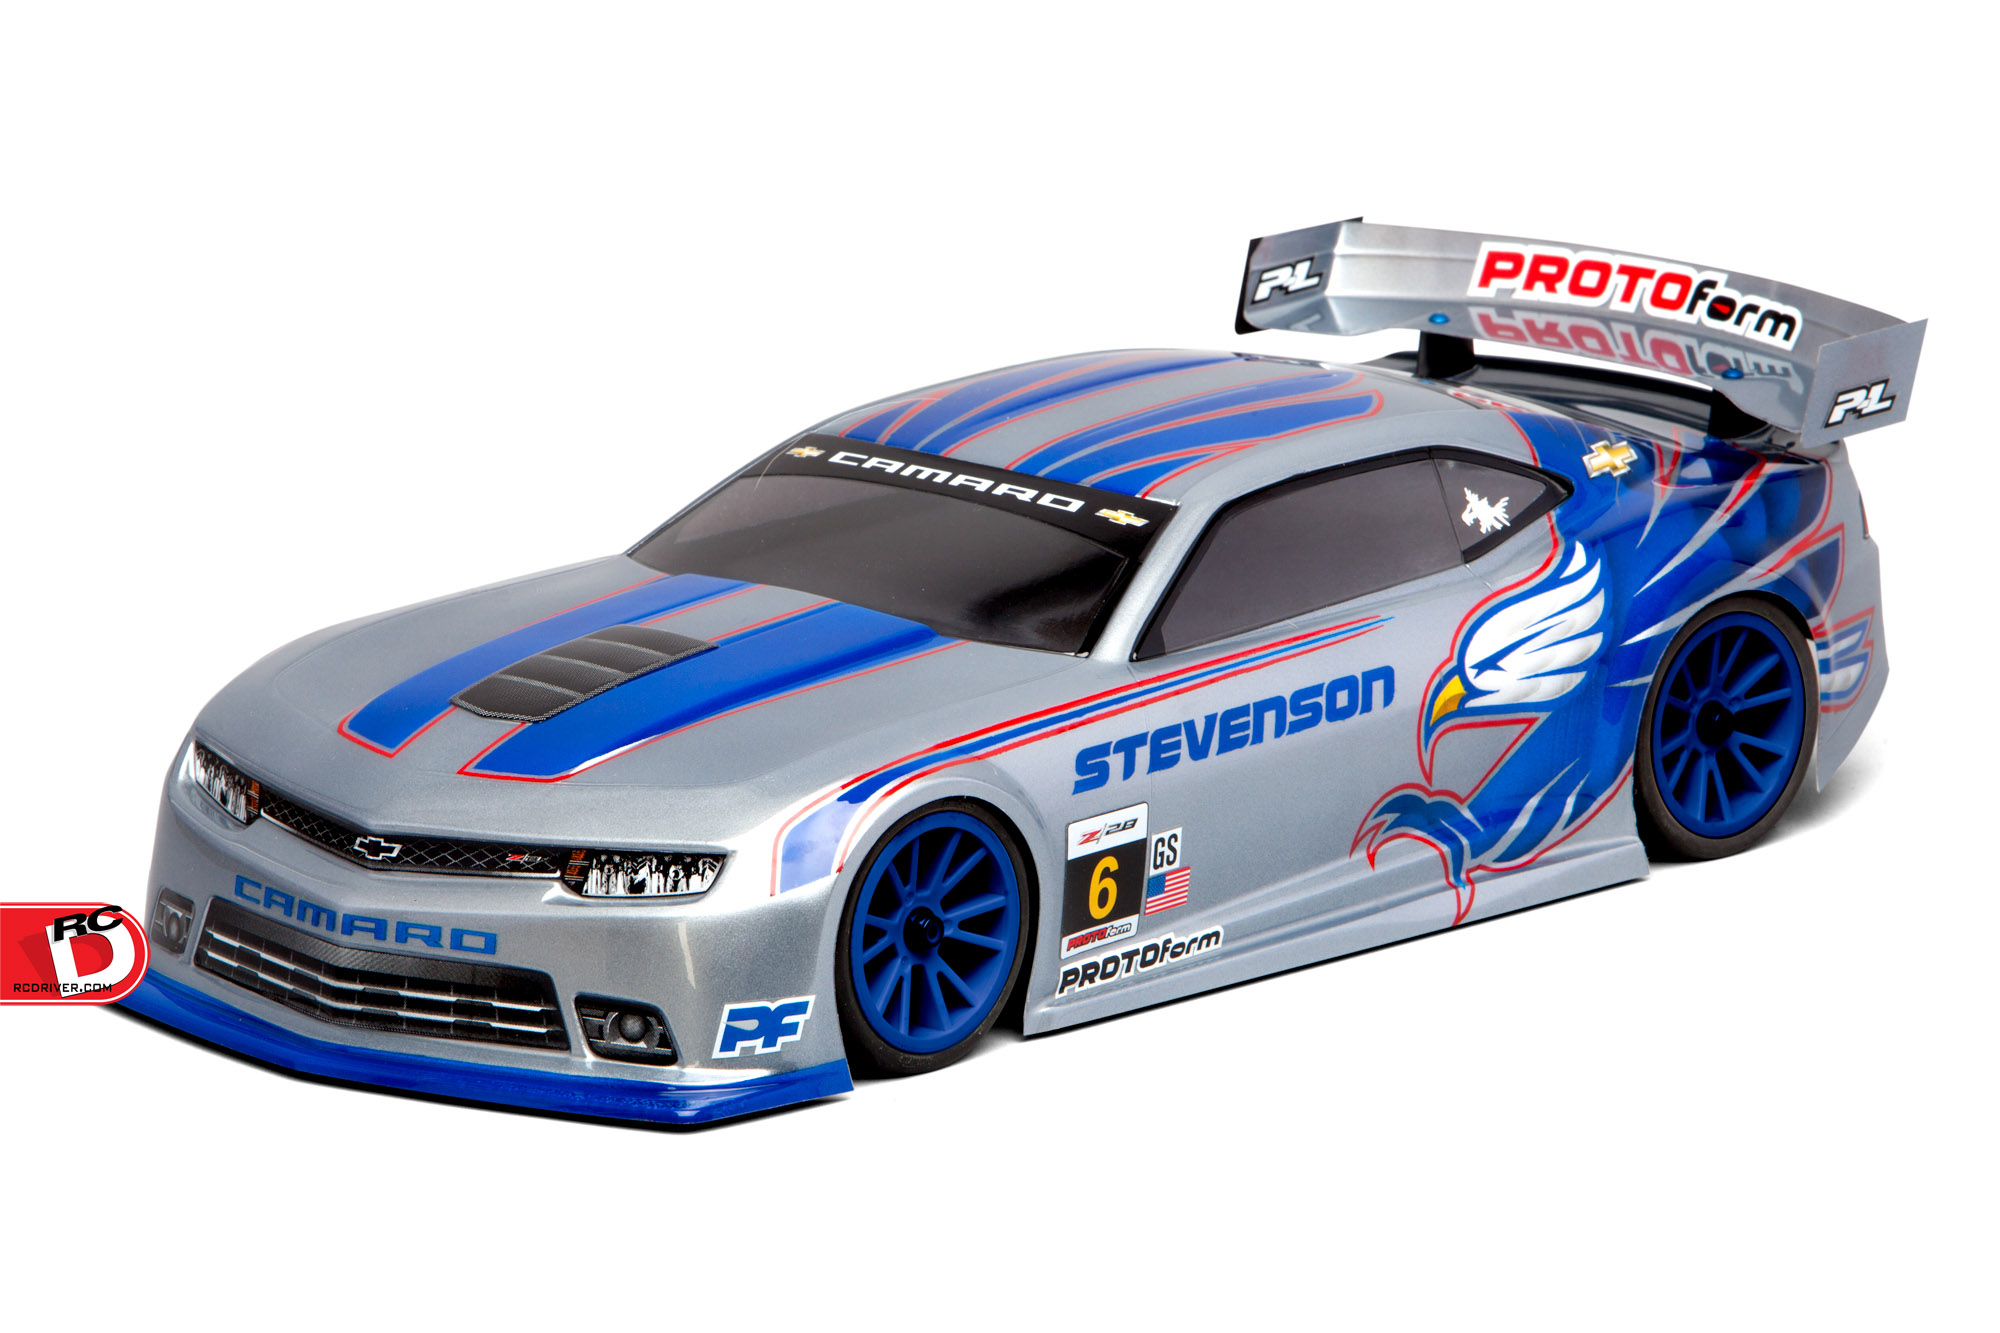 PROTOform - Chevy Camaro Z-28 Clear Body copy